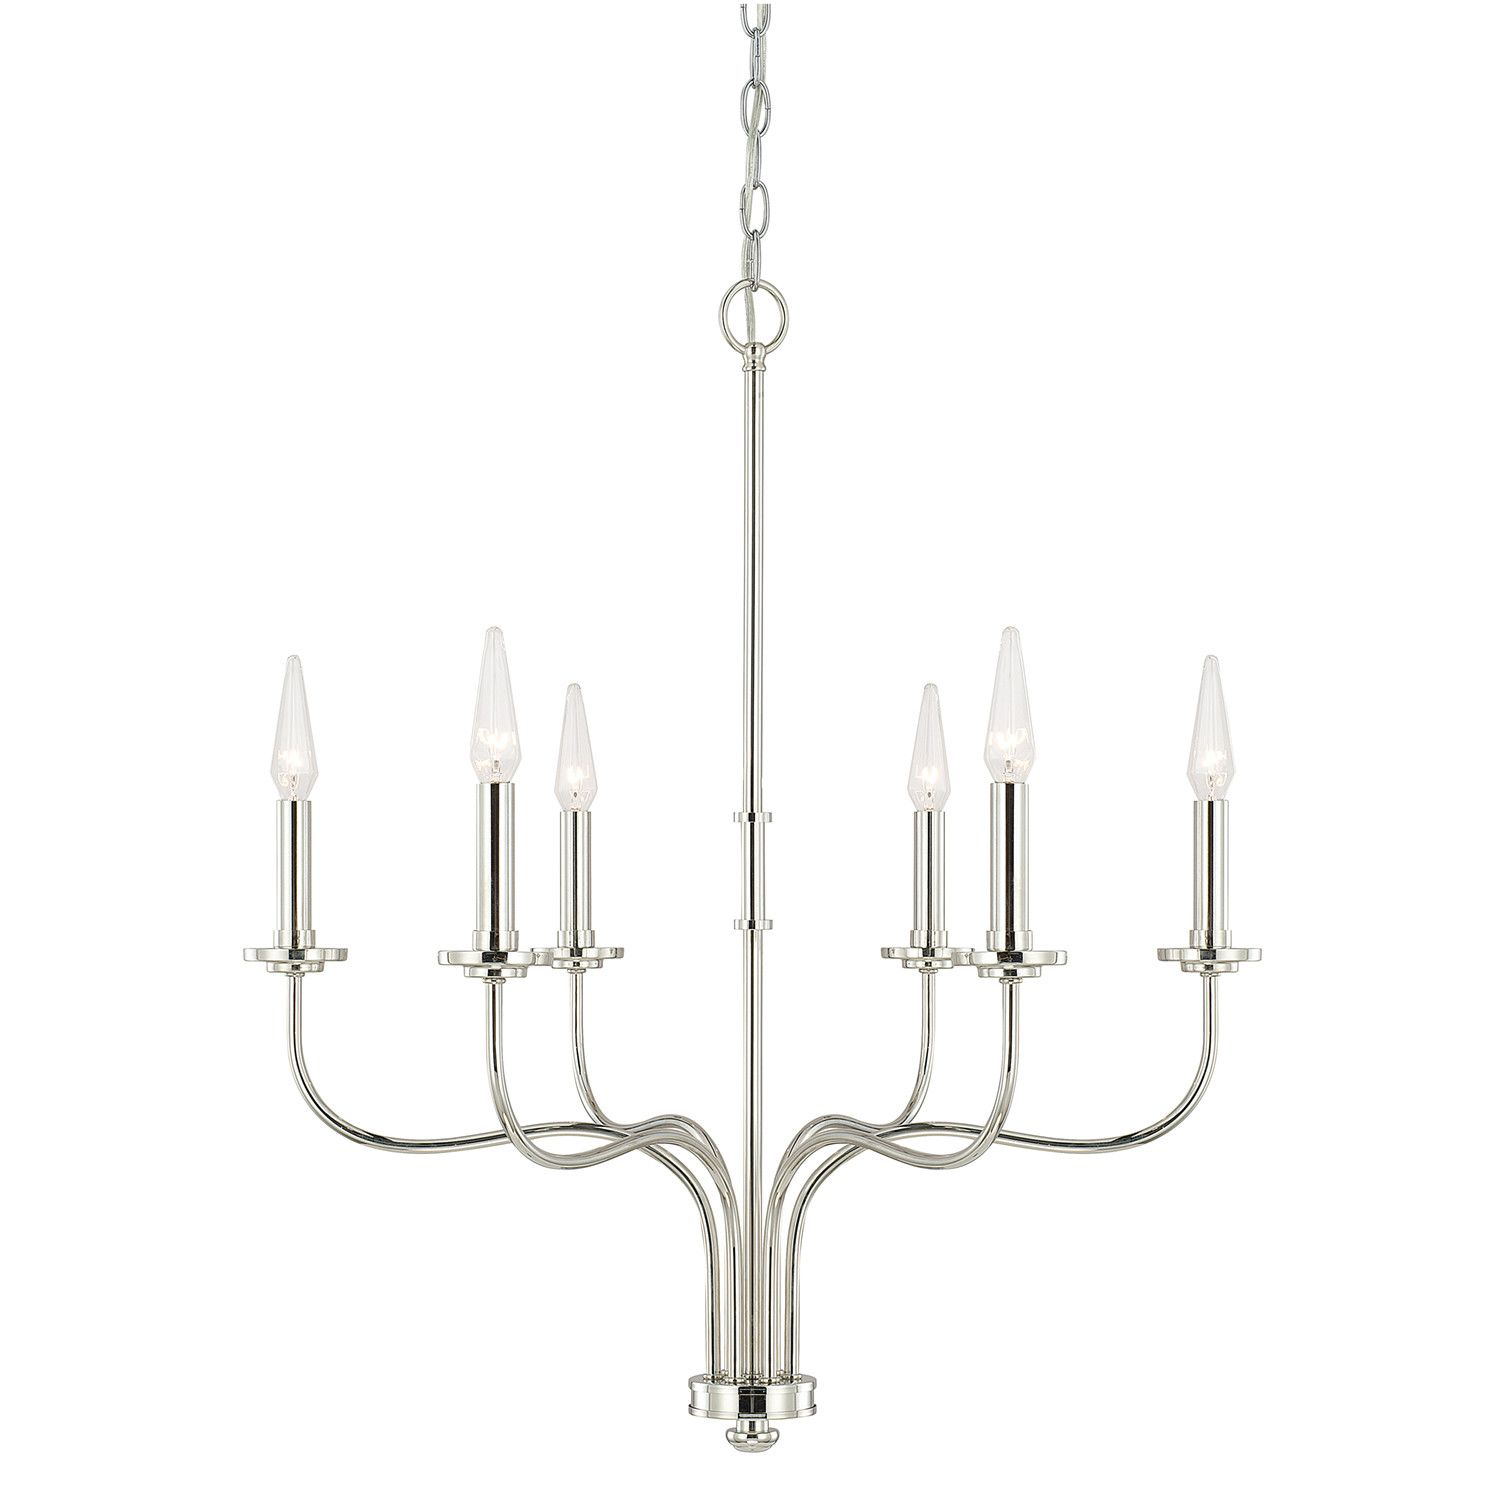 Red Barrel Studio Molly 6 Light Candle Style Chandelier